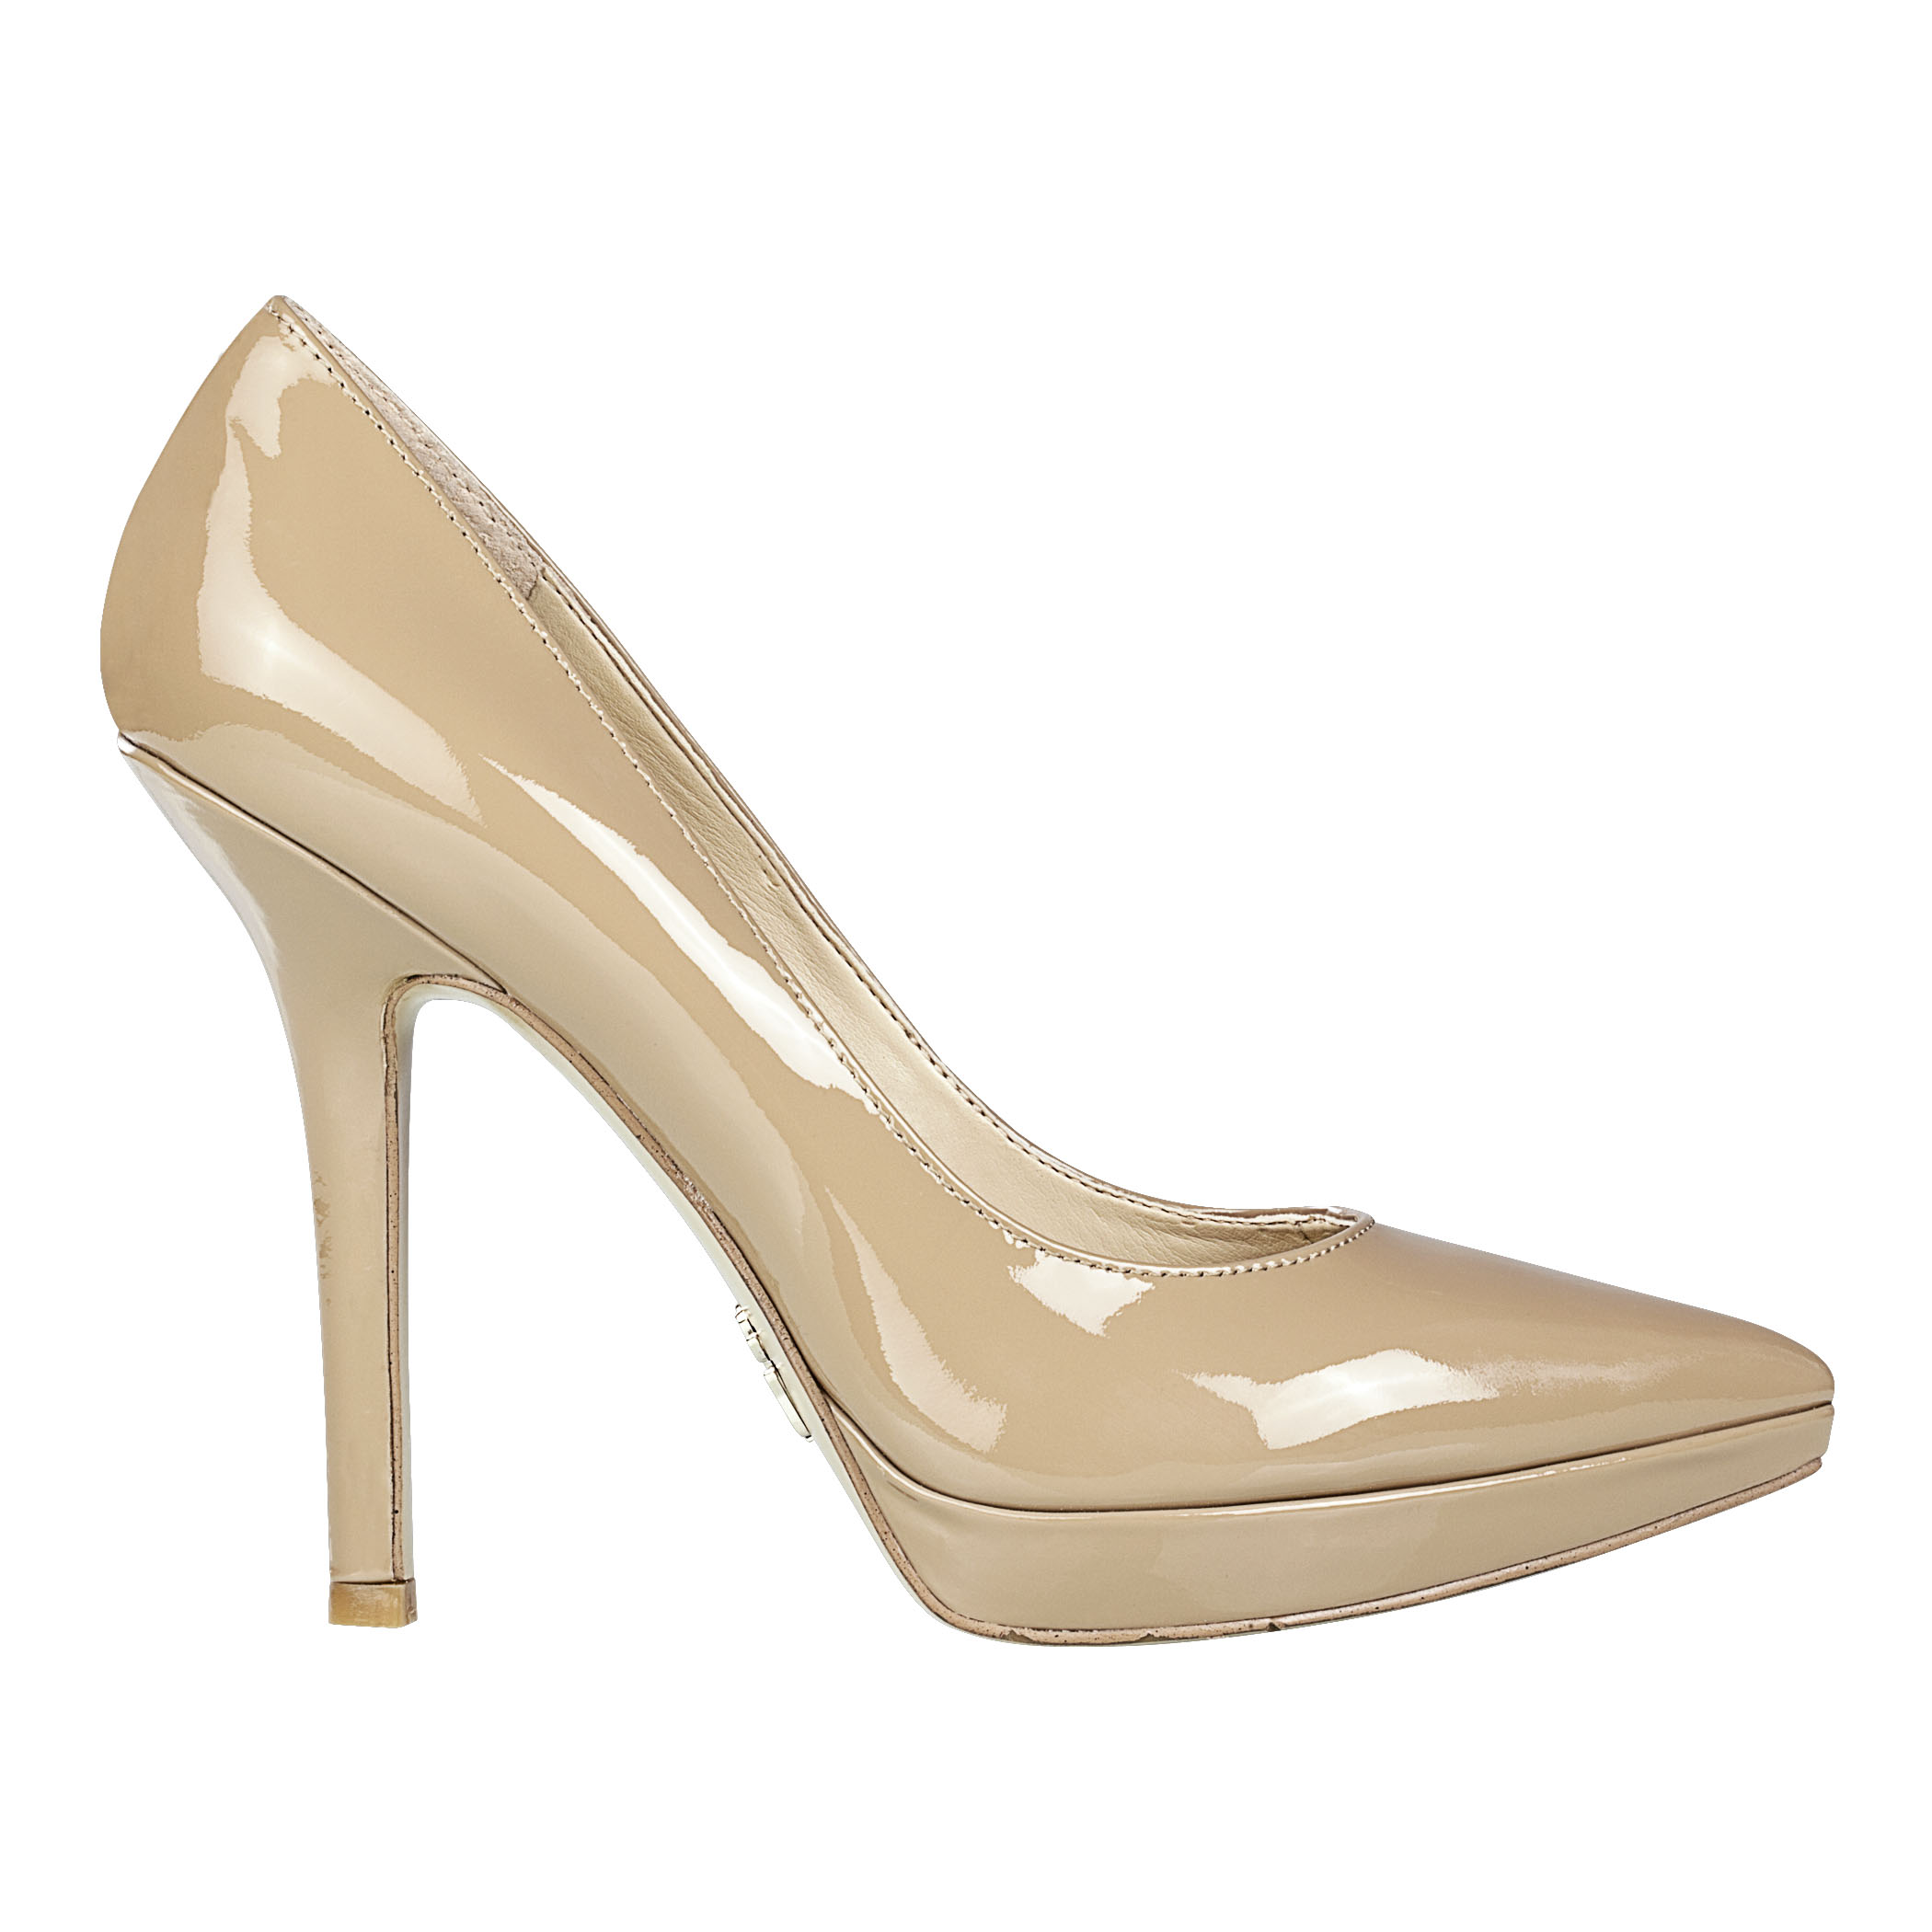 Latest Fashion of Stiletto & Heels Collection for women by Nine West(30)